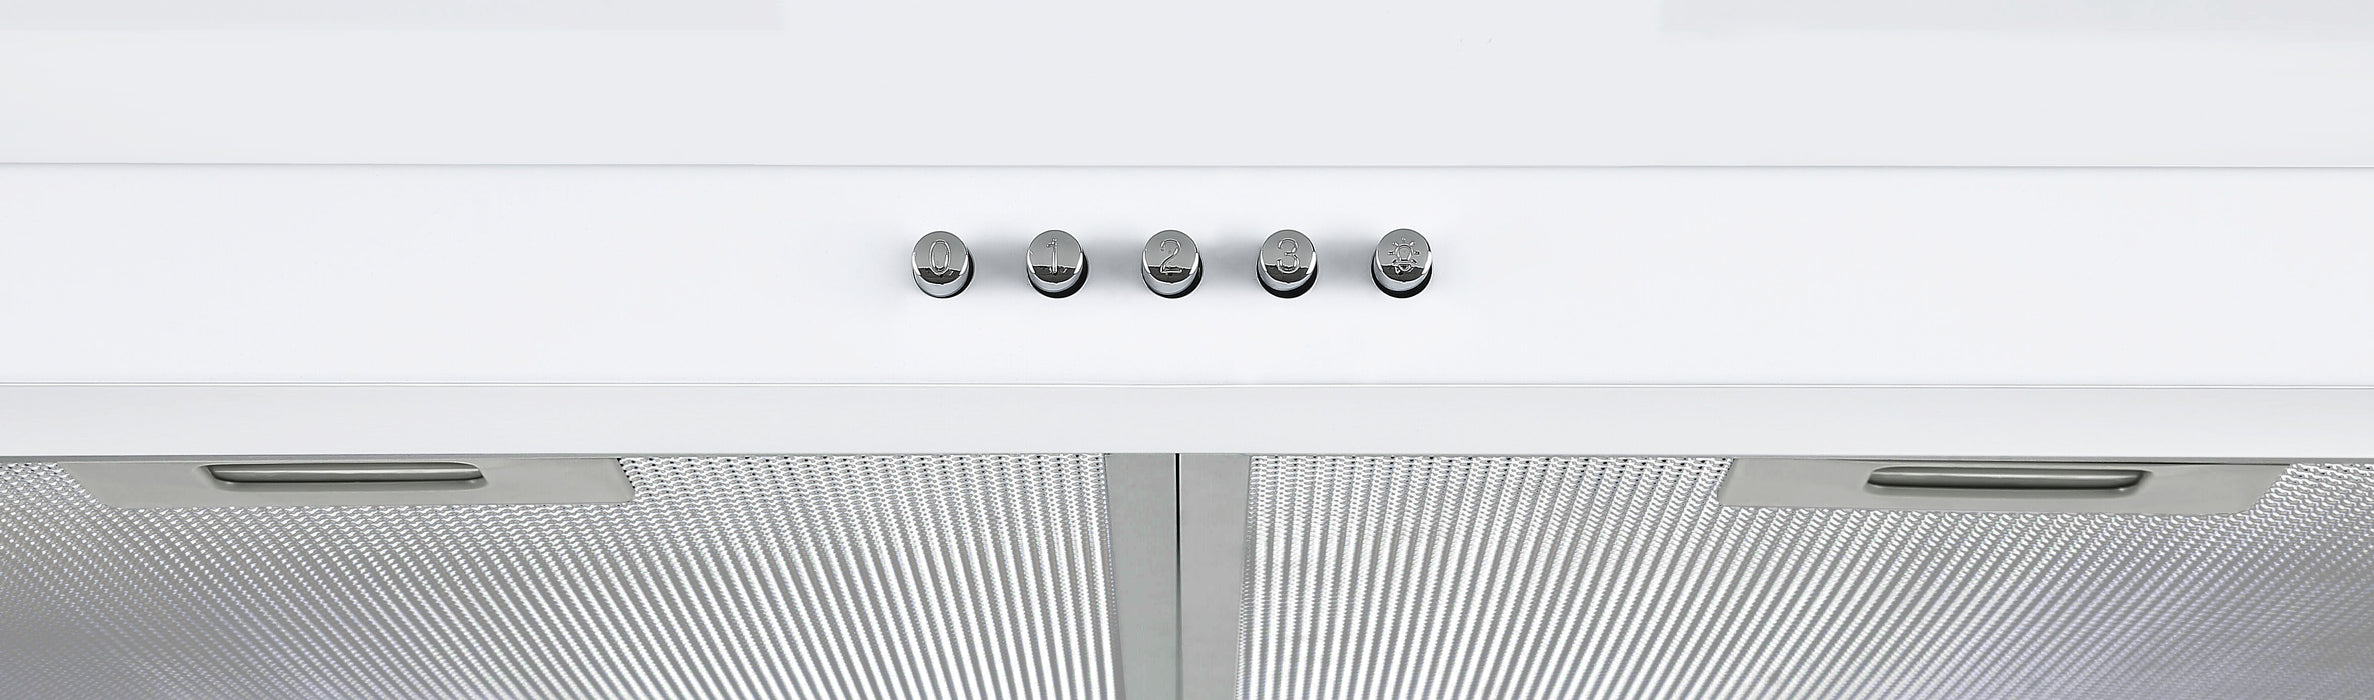 30 in. Convertible Wall-Mounted Pyramid Range Hood in White